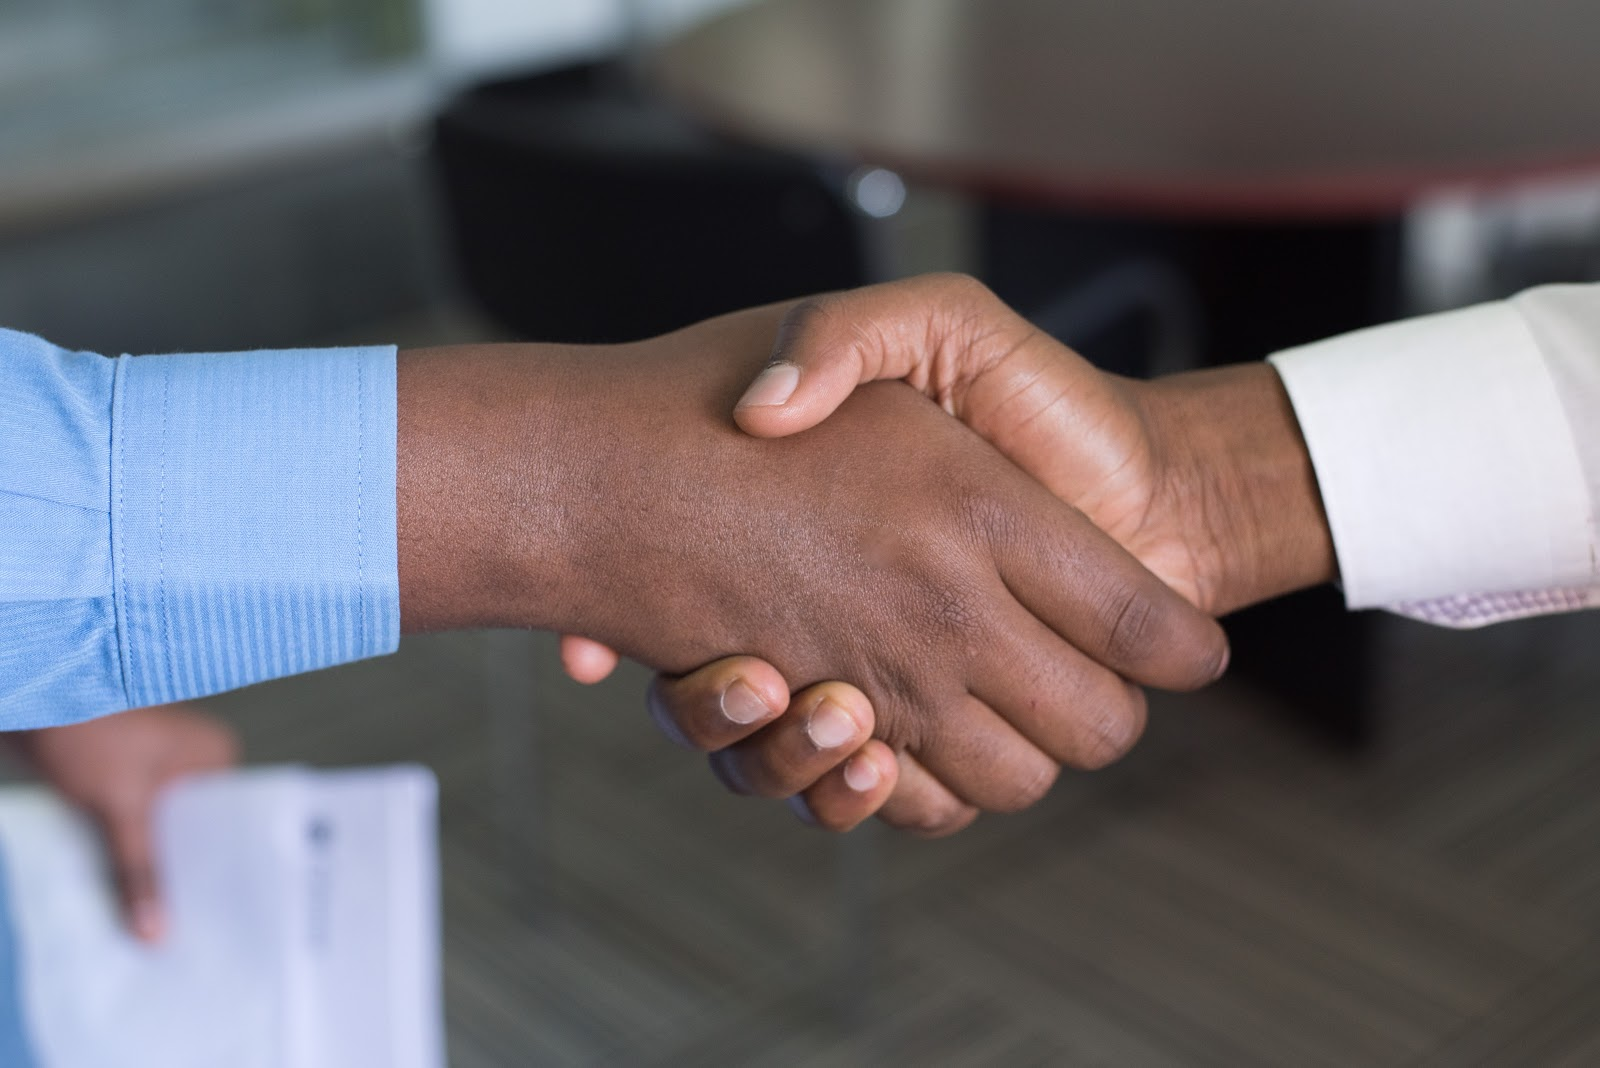 Shaking hands and build trust through brand awareness